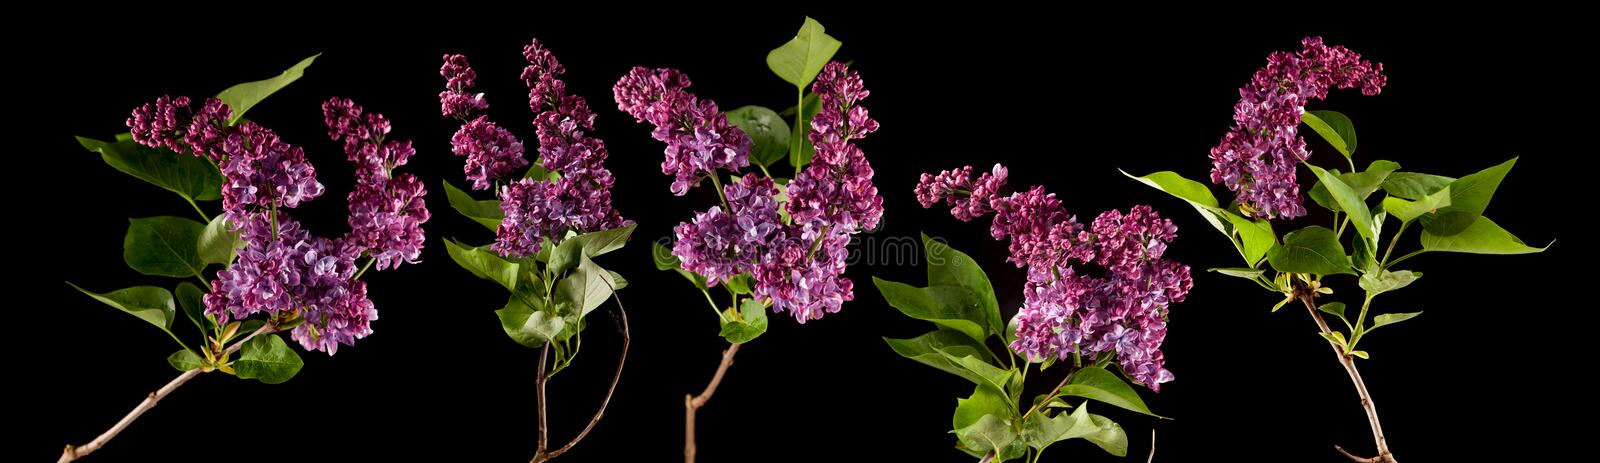 Brightly glowing purple, violet lilac blossom flowers isolated on black royalty free stock photography